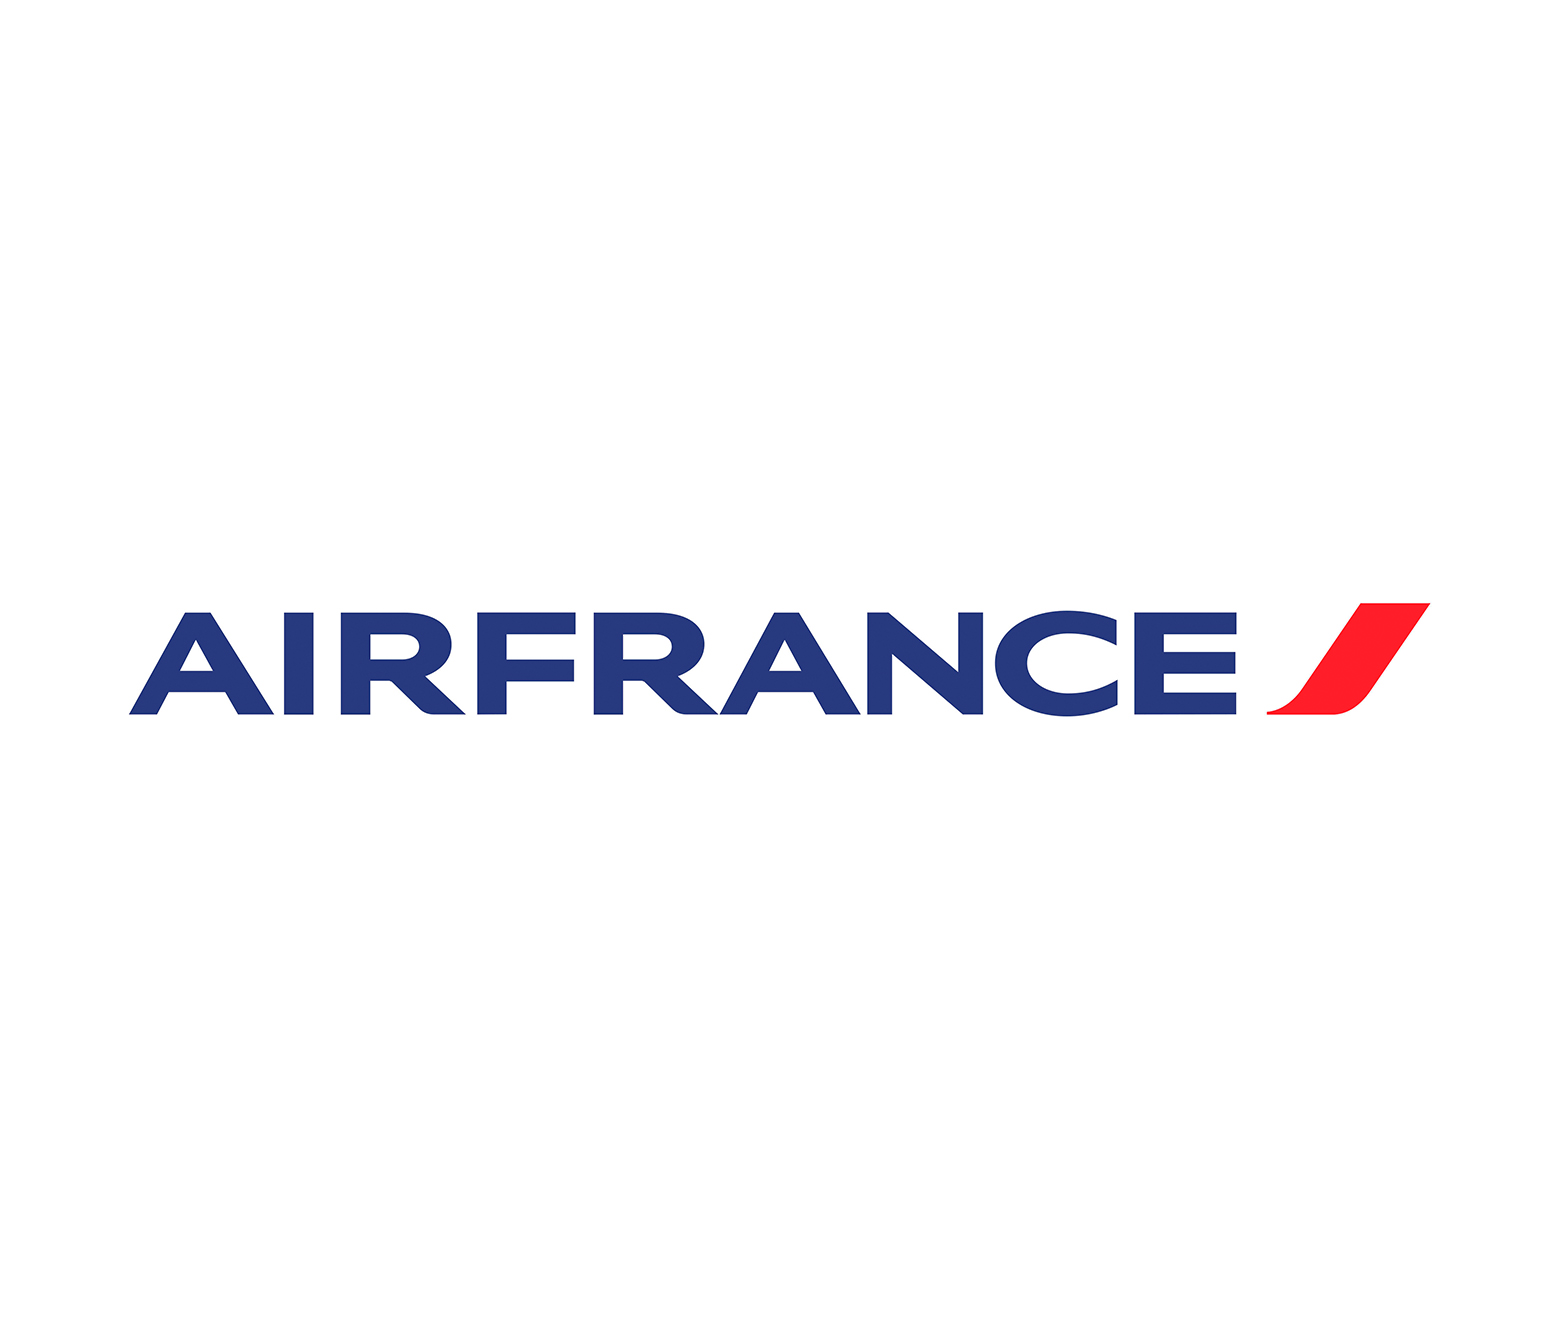 airline-airfrance